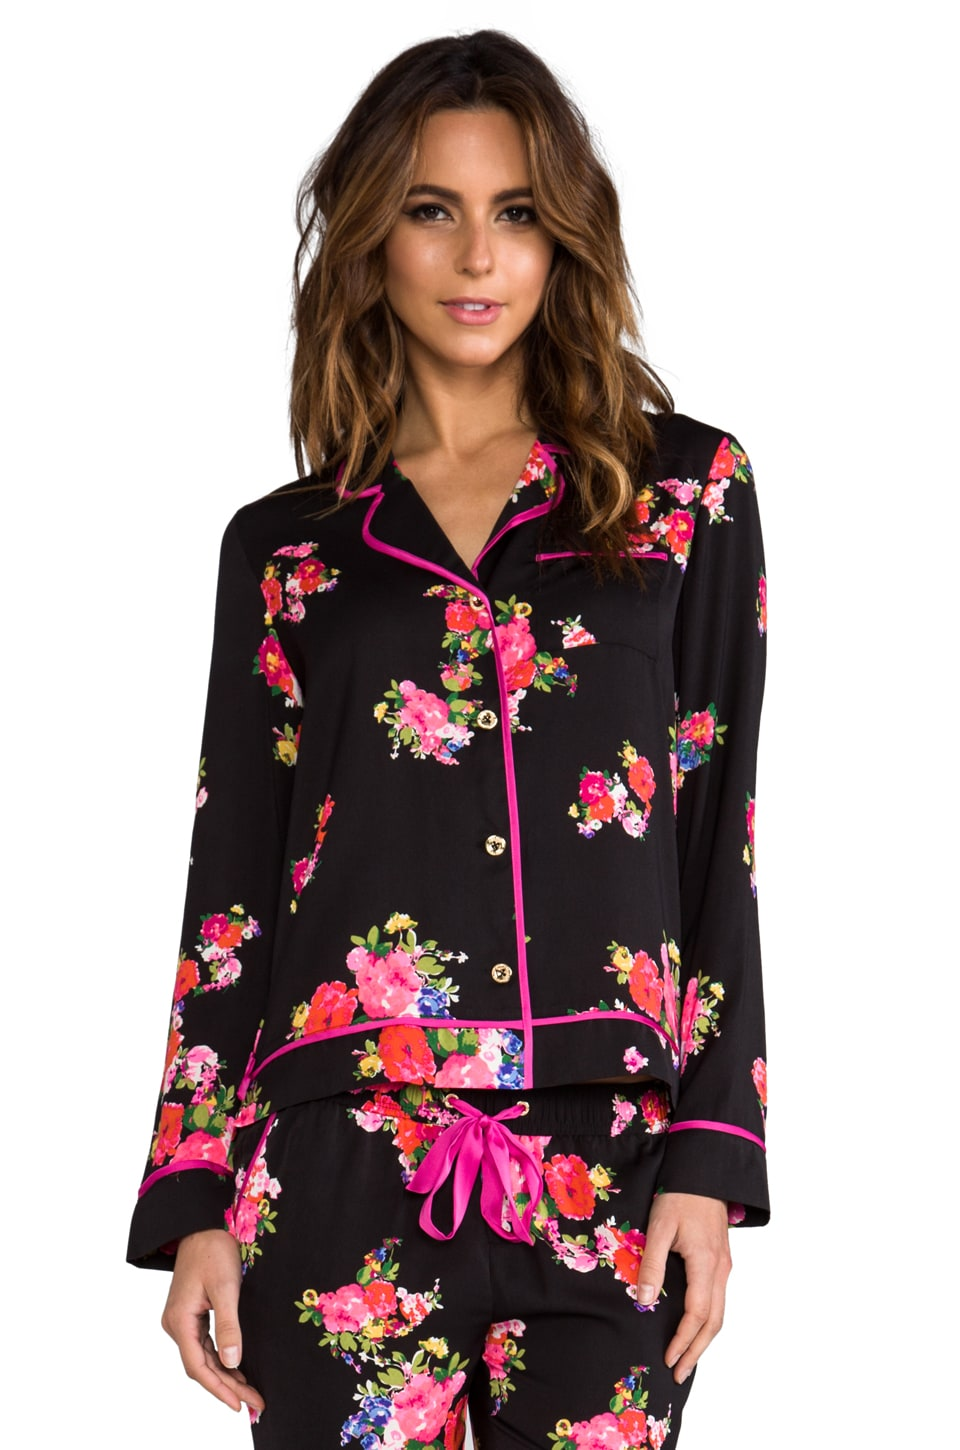 Juicy Couture Jazzy Floral PJ Top in Black & Jazzy Floral